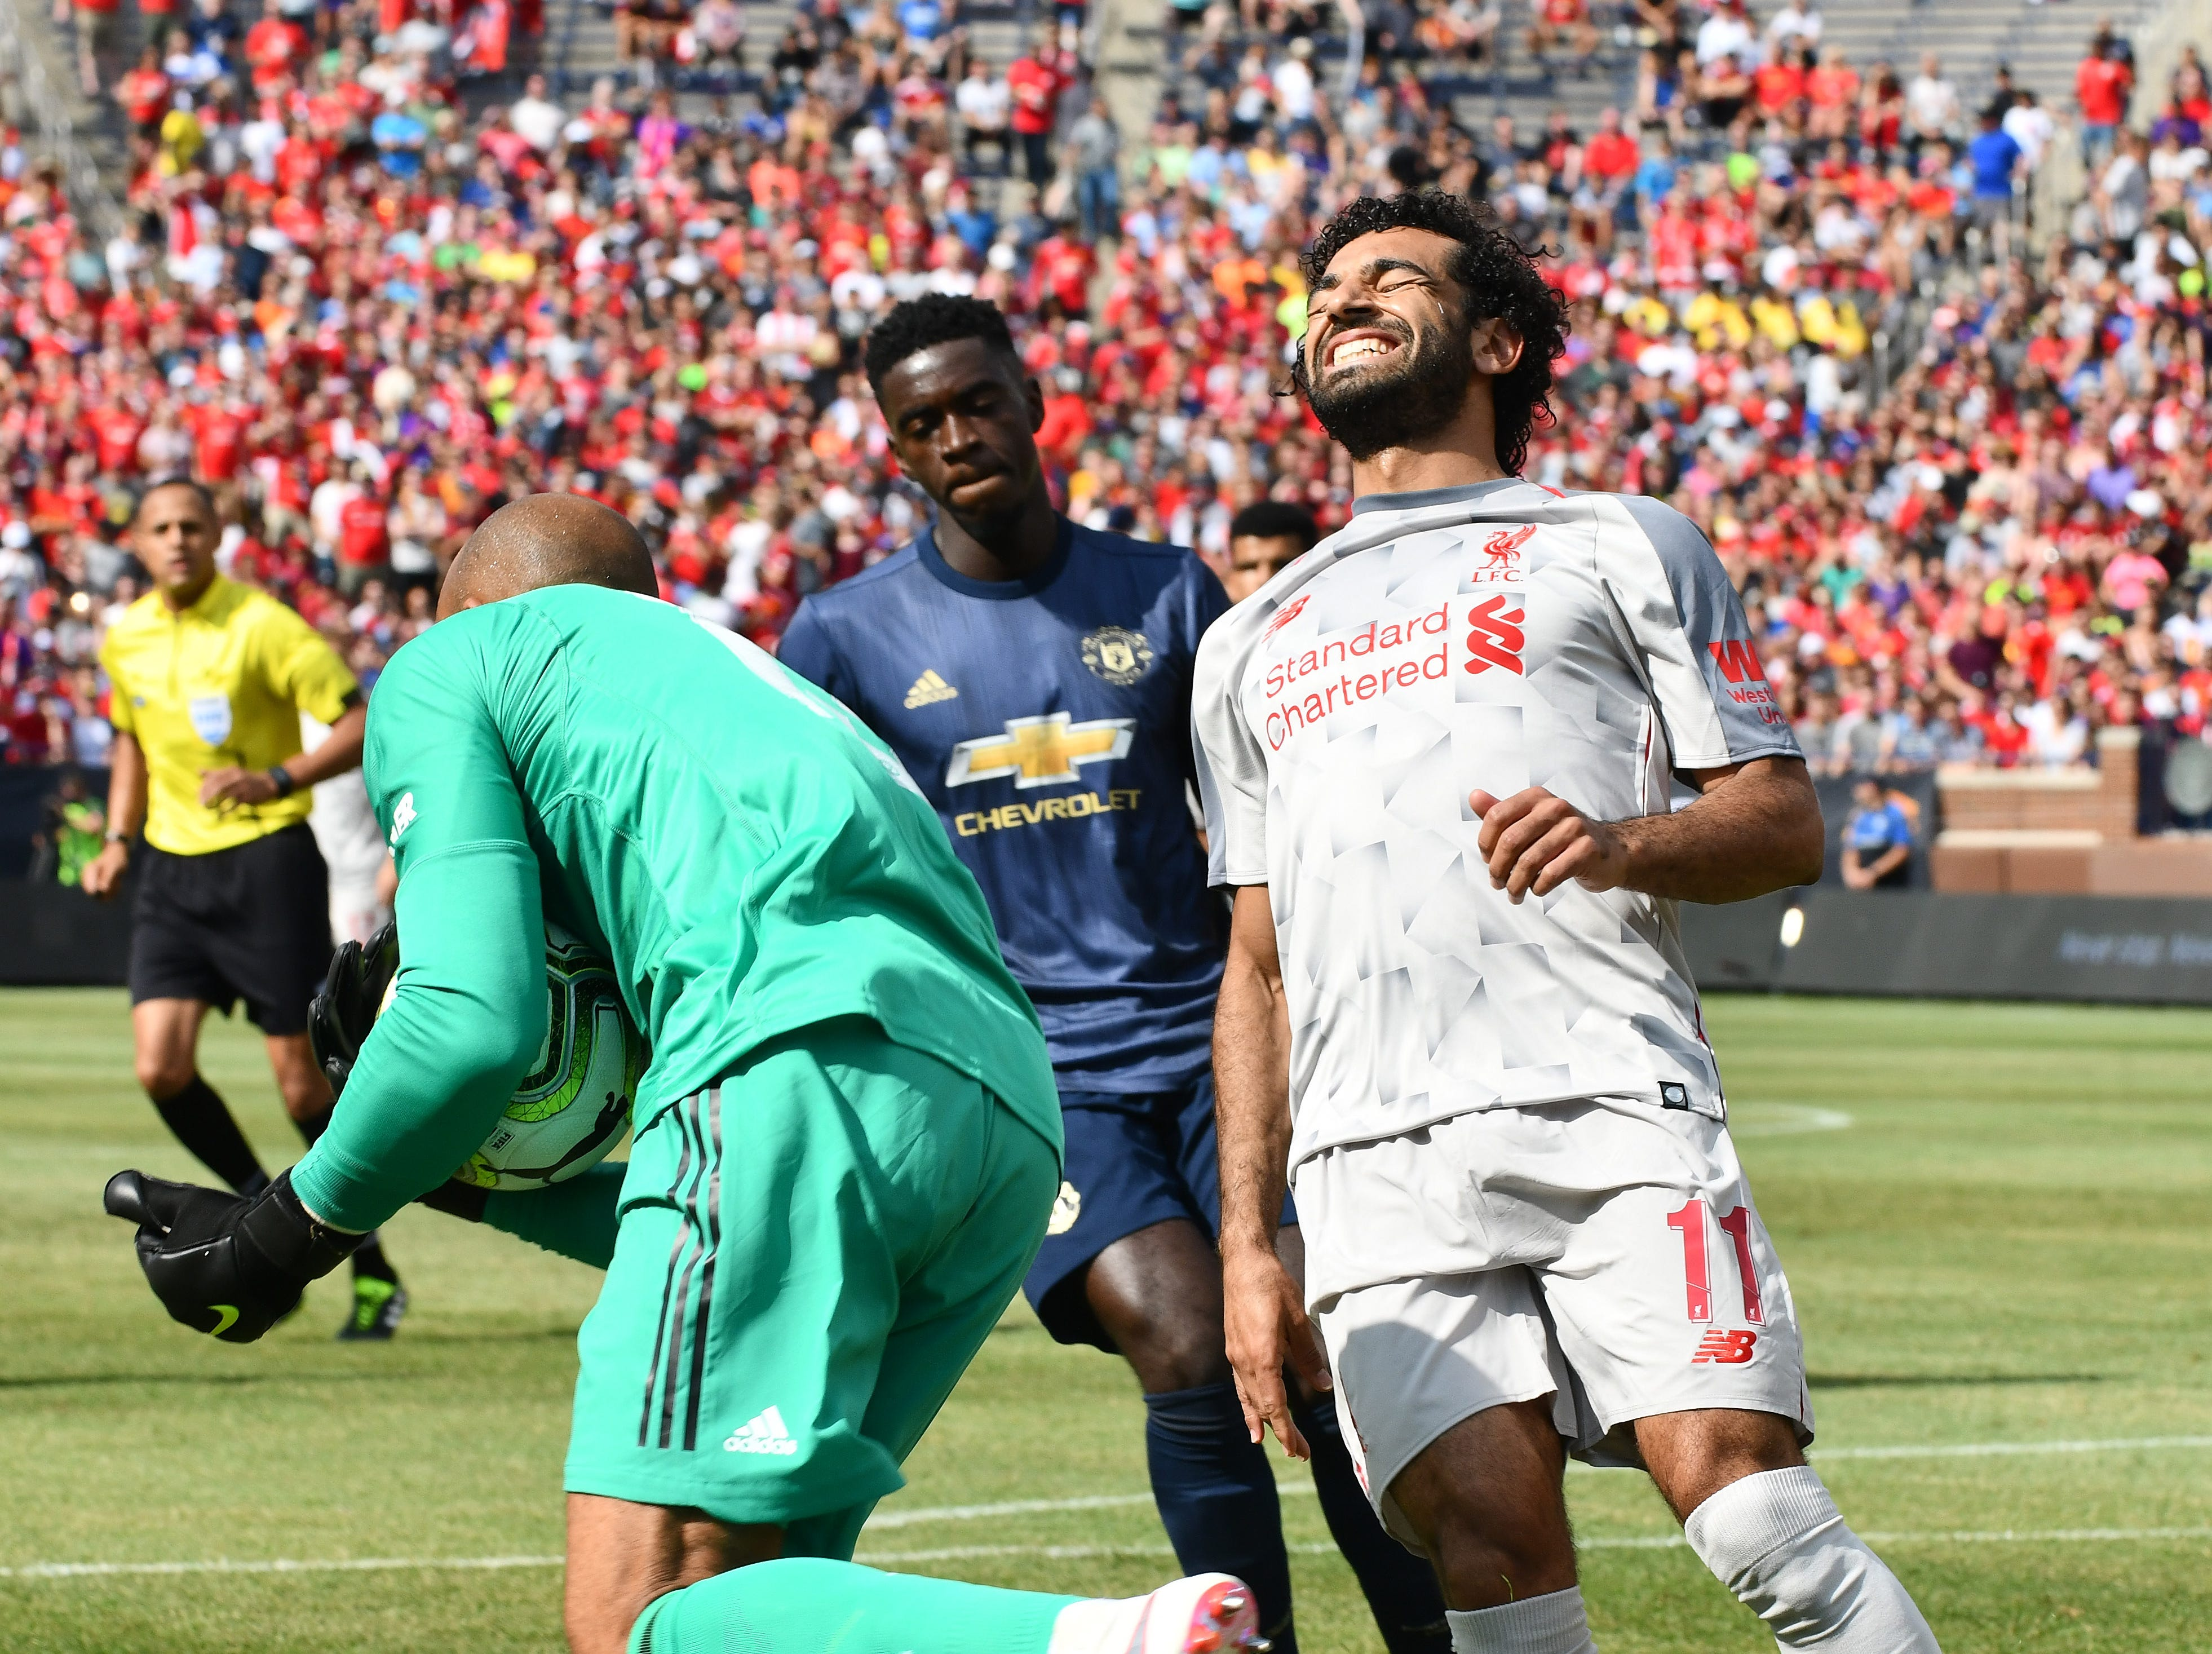 Liverpool's Mohamed Slah grimaces as Manchester goalie Lee Grant is able to scoop up a ball in front of the net before Slah could get a foot on it in the first half.